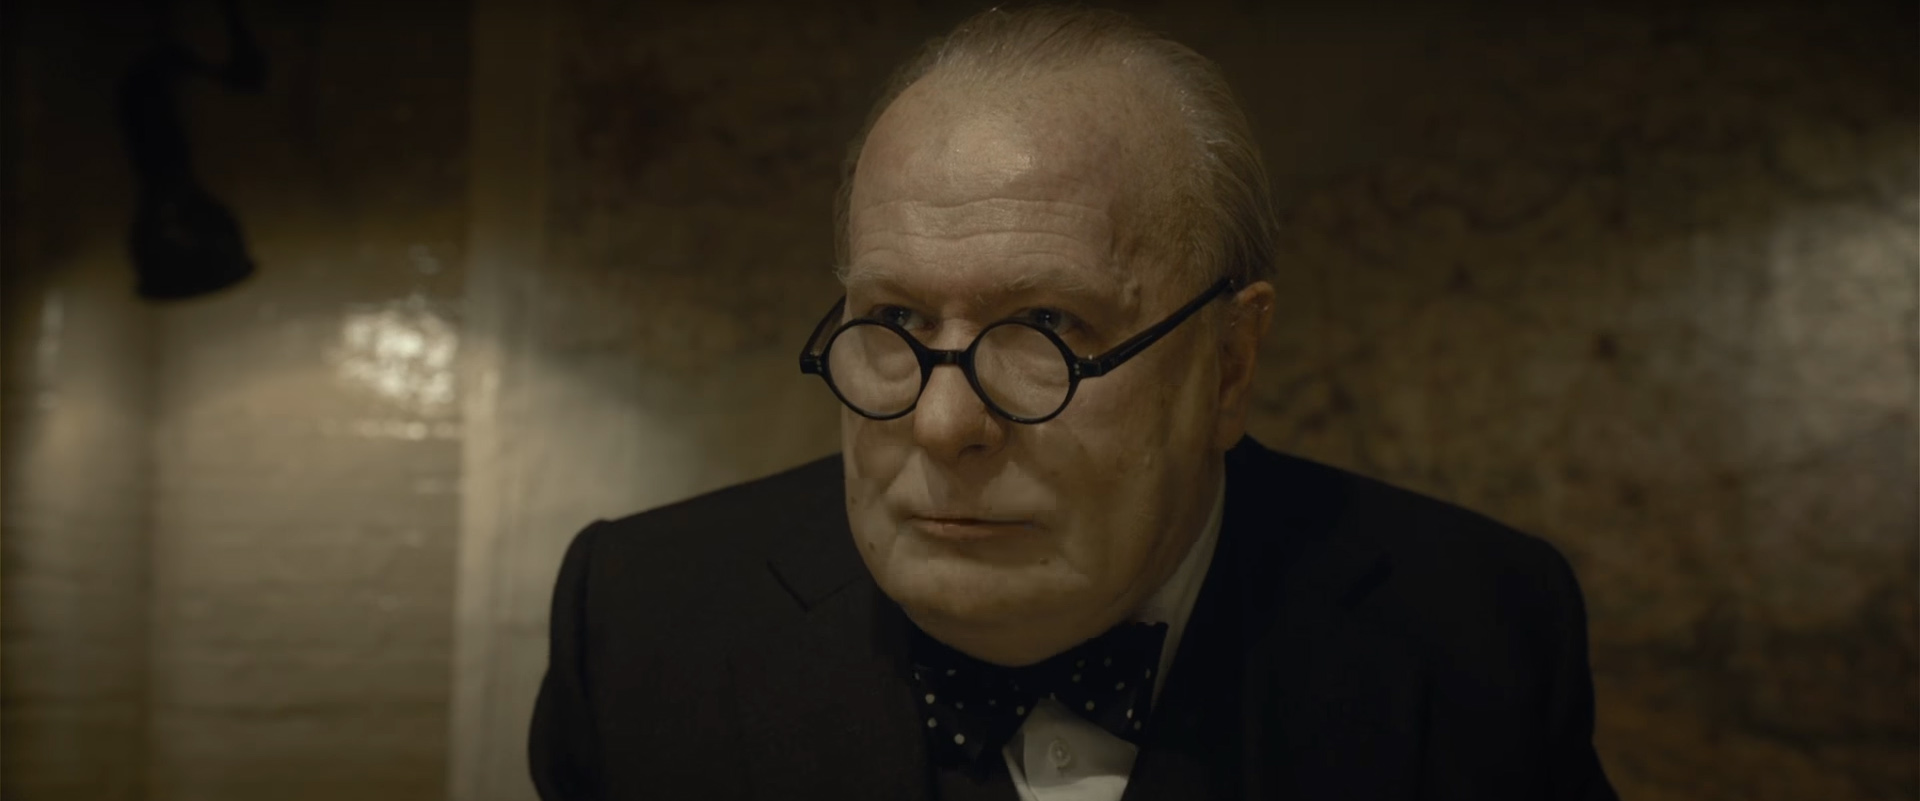 Darkest Hour Banner